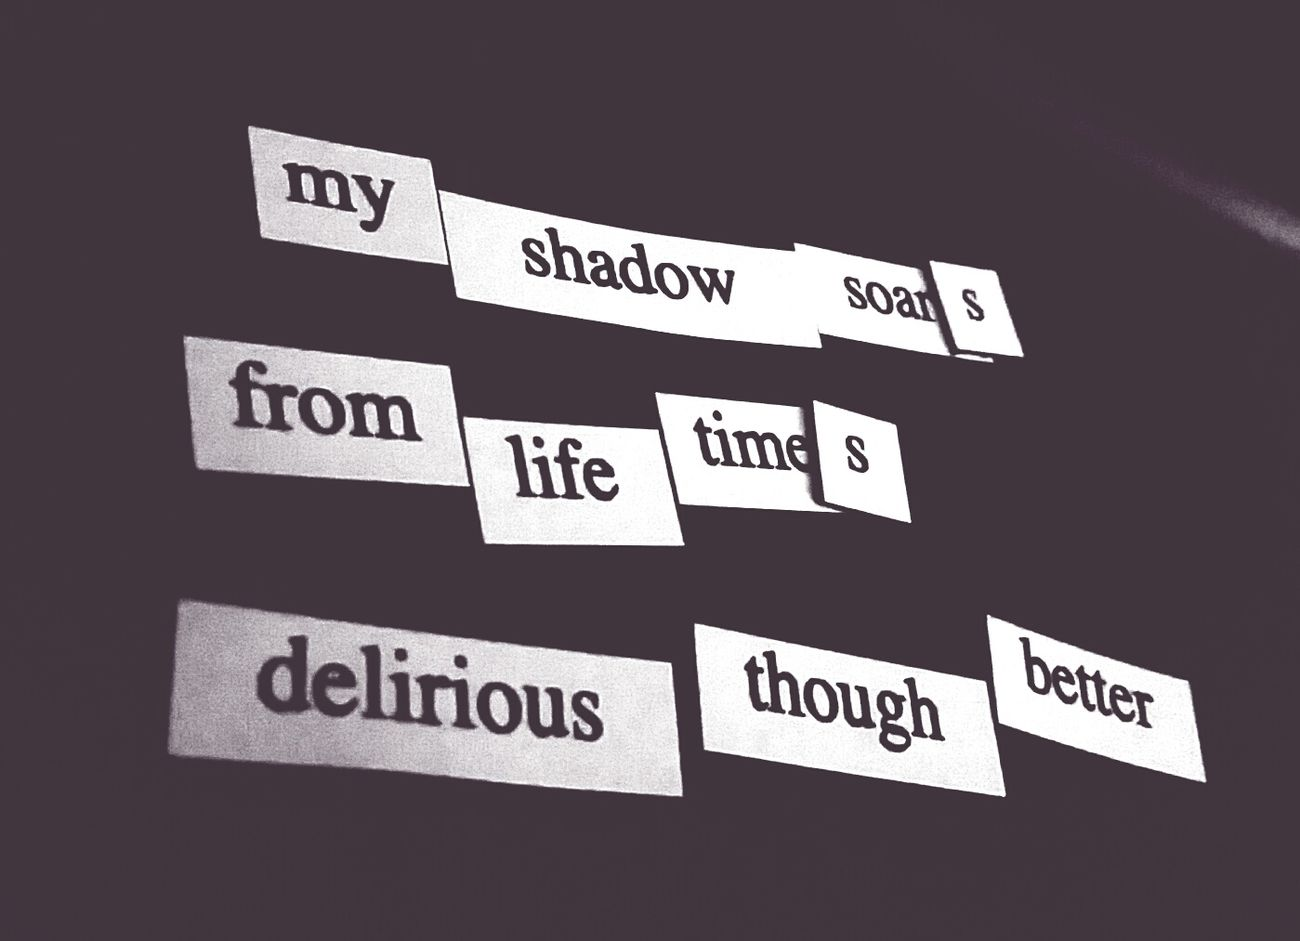 Magnet Poetry Poetry Delirious Shadow Fridge Poetry Black And White Hanging Out